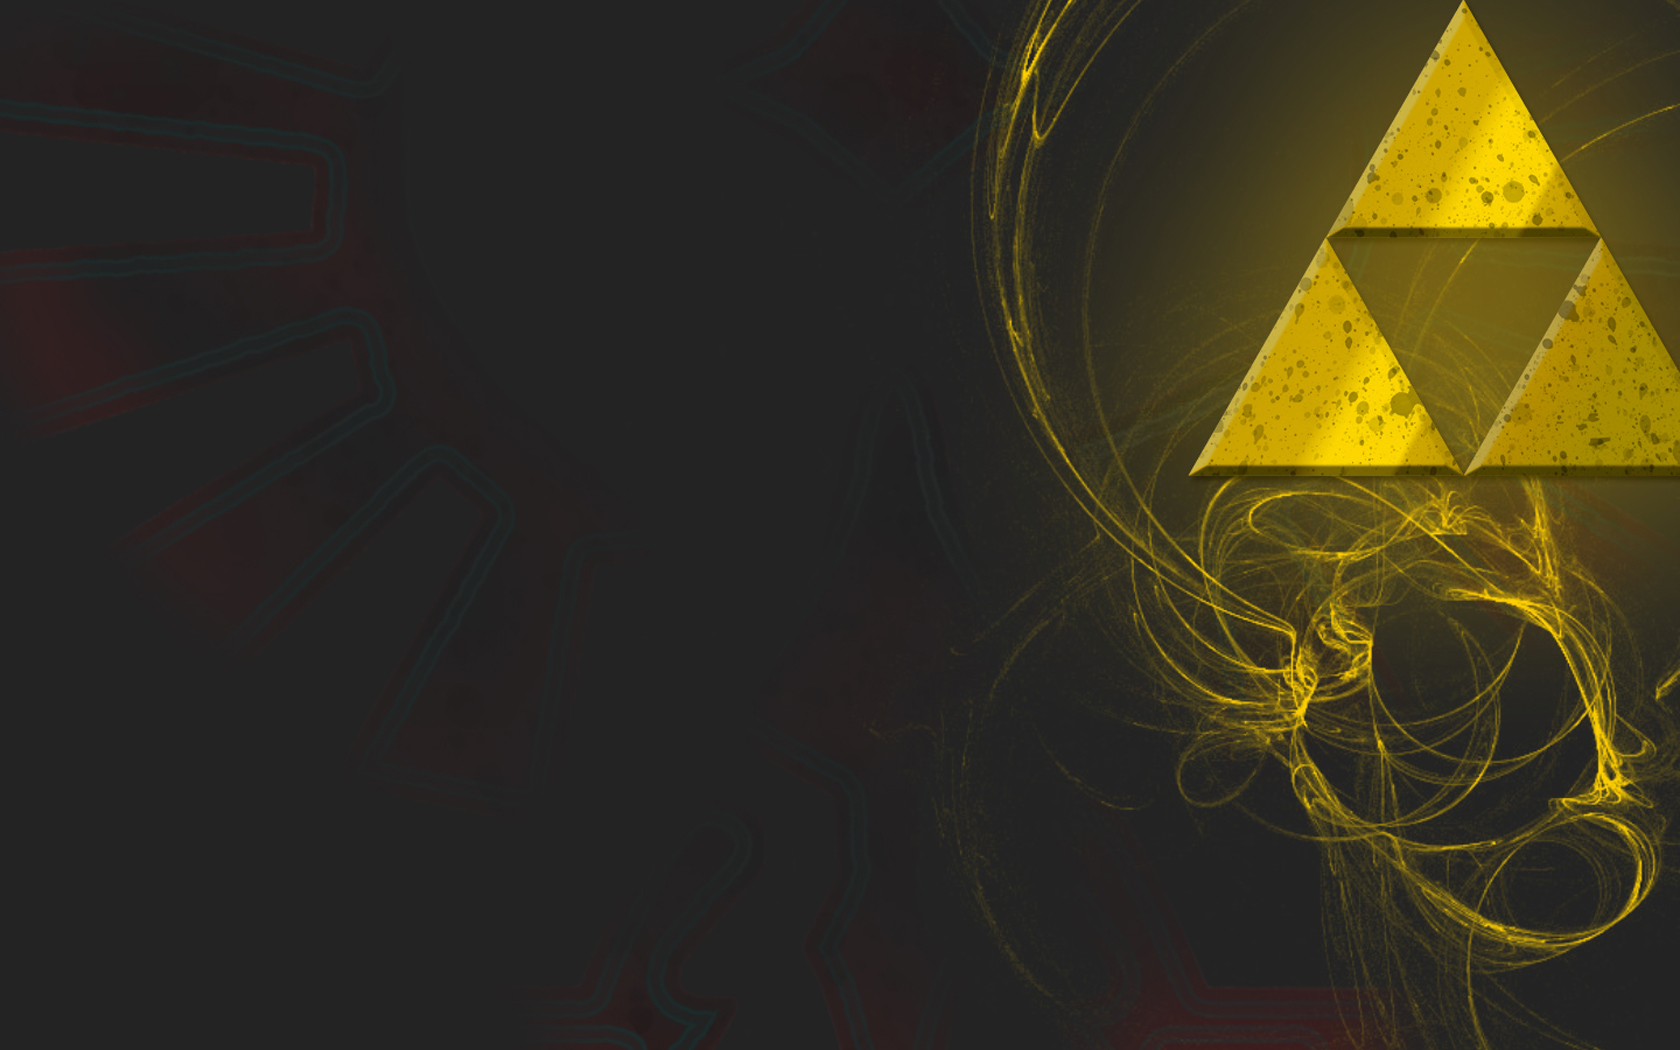 hd zelda wallpapers - photo #25